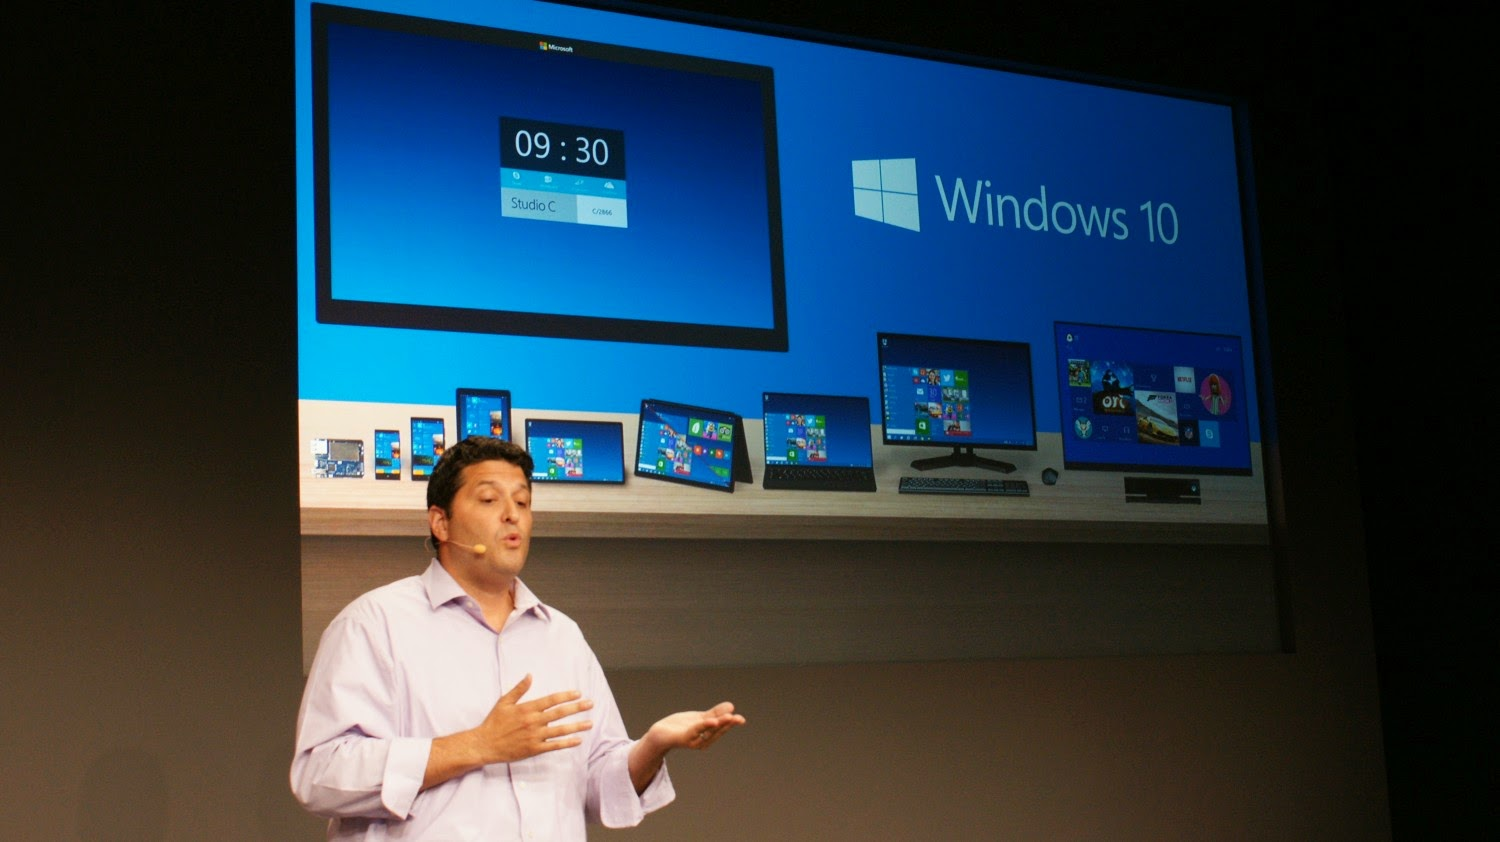 Windows 10 New Released